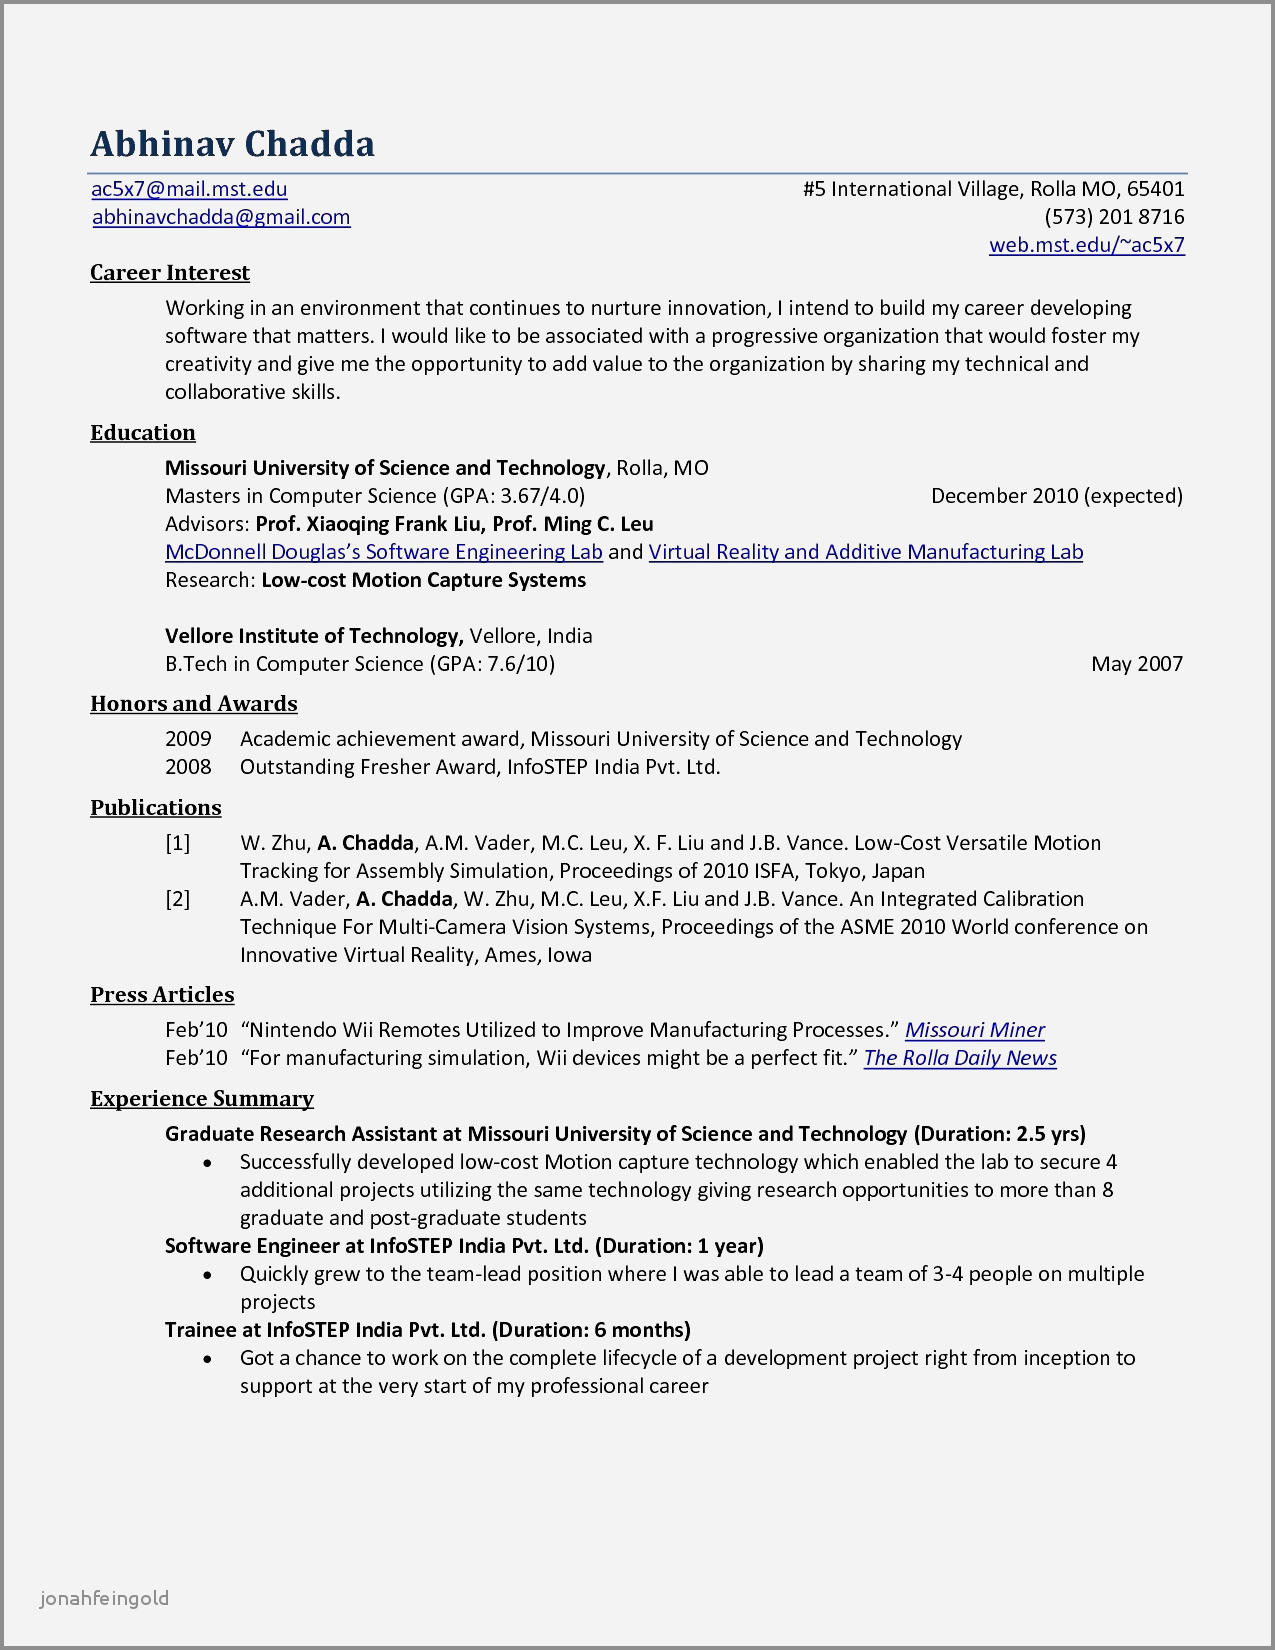 98 Inspirational Sample Resume For Computer Science Engineering Students for Graphics